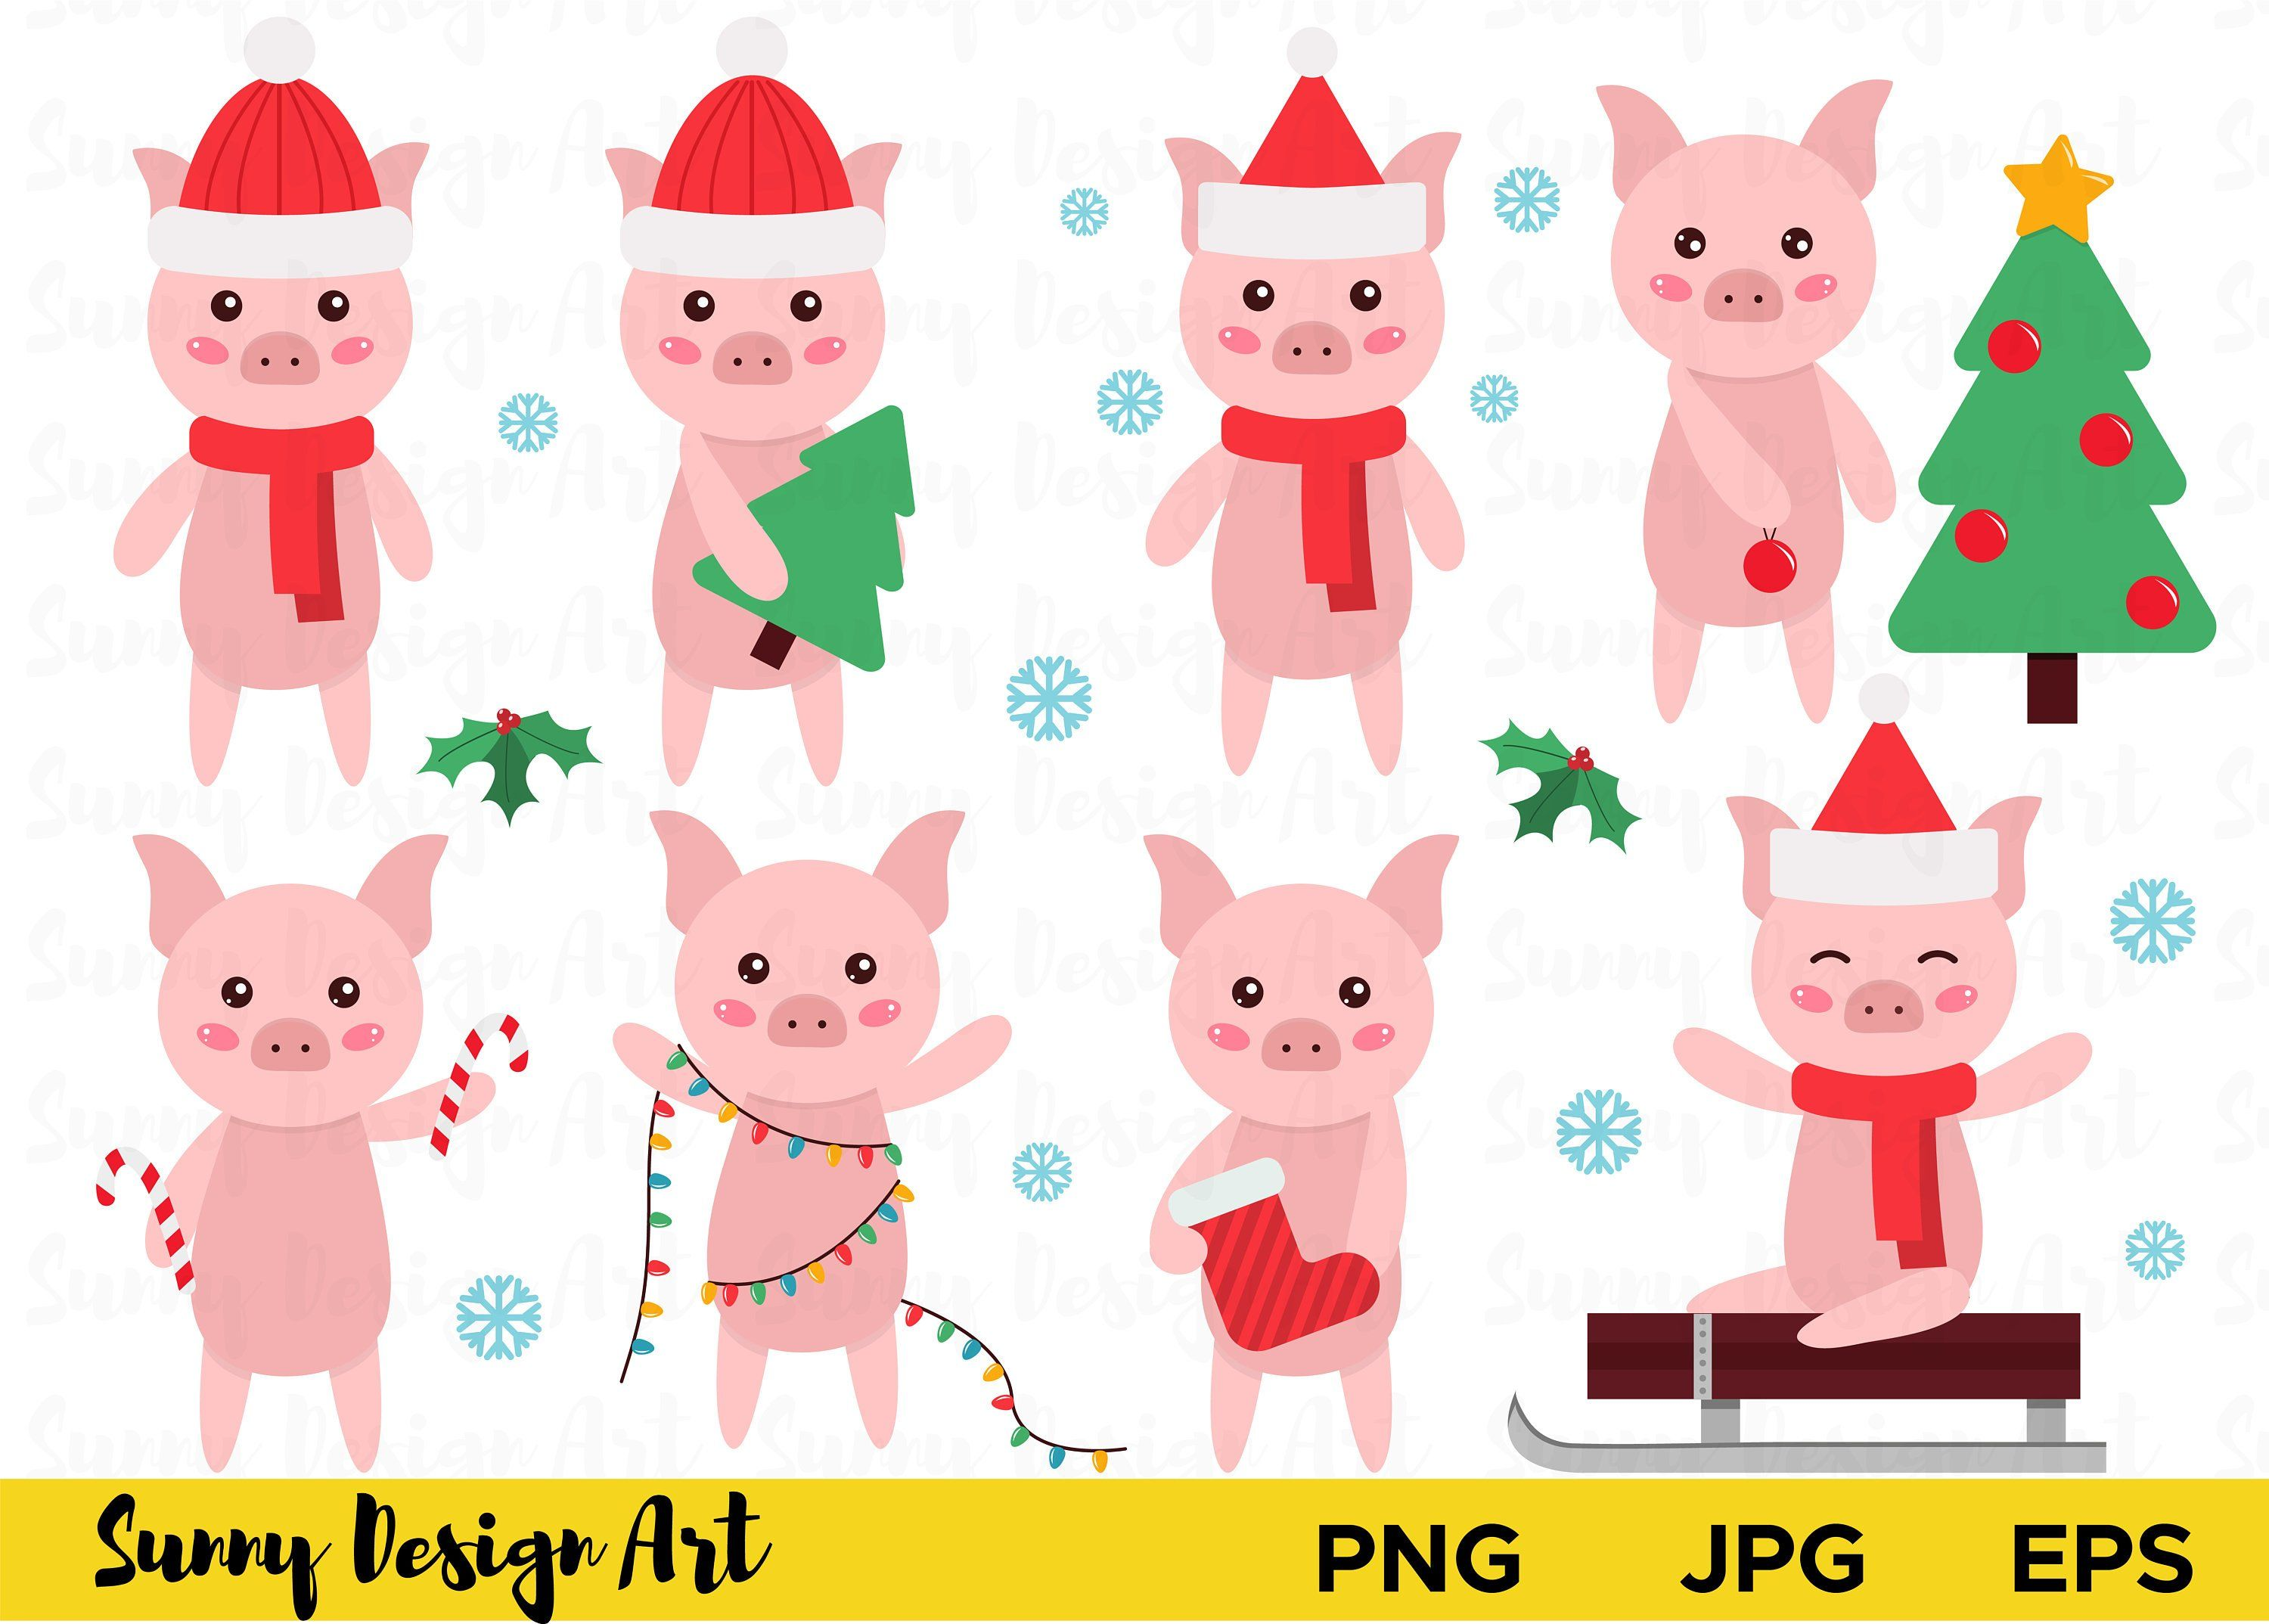 Cute pigs clipart New Year 2019 symbol pig Christmas.